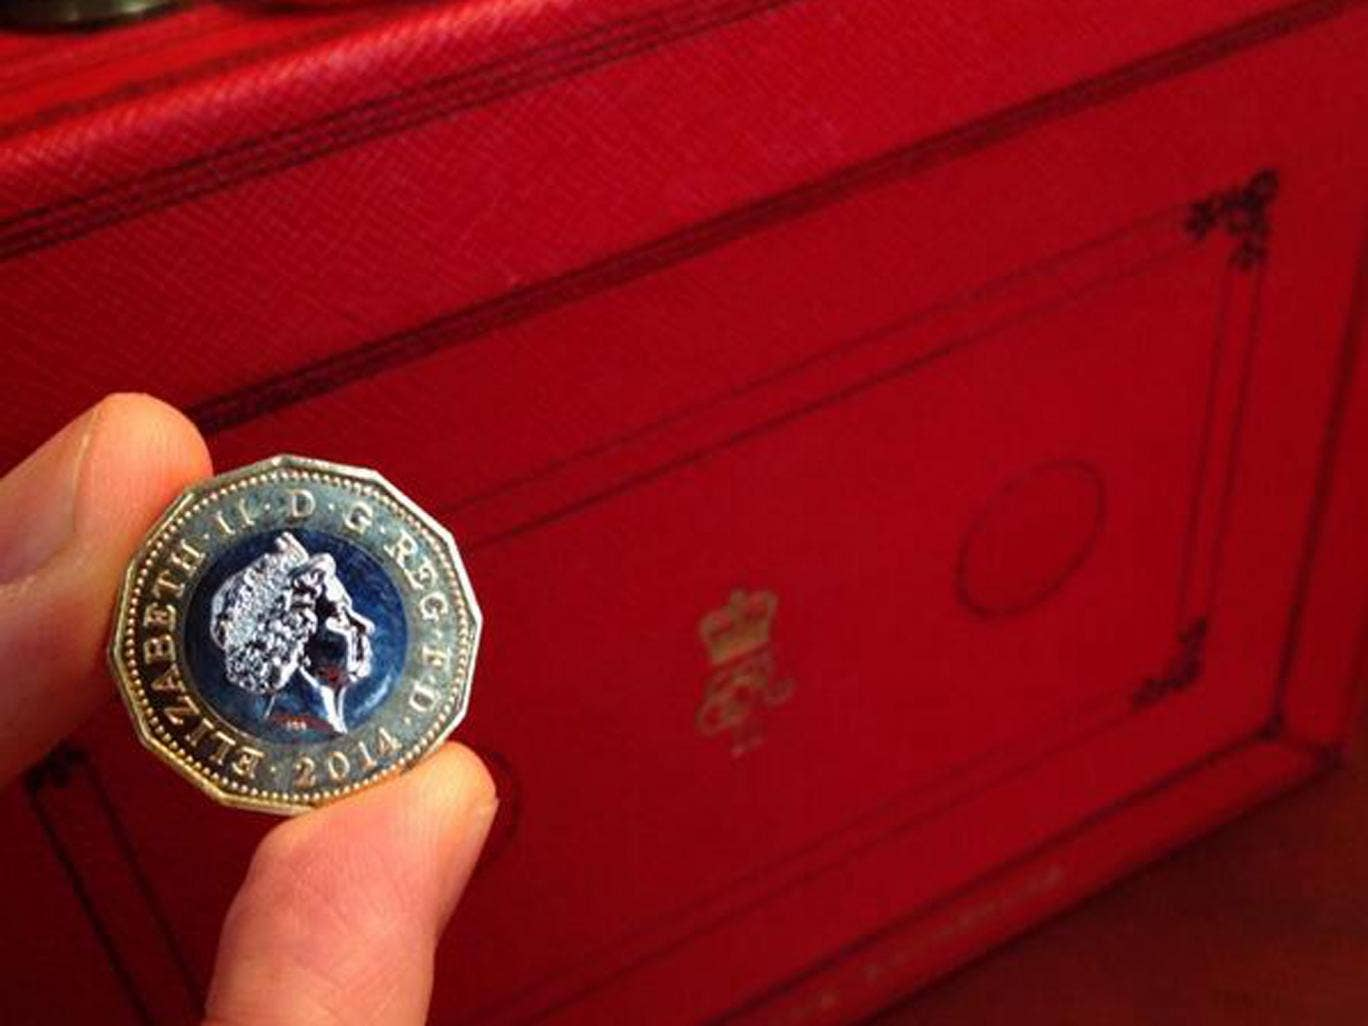 George Osborne tweeted a picture of the new coin ahead of the budget today